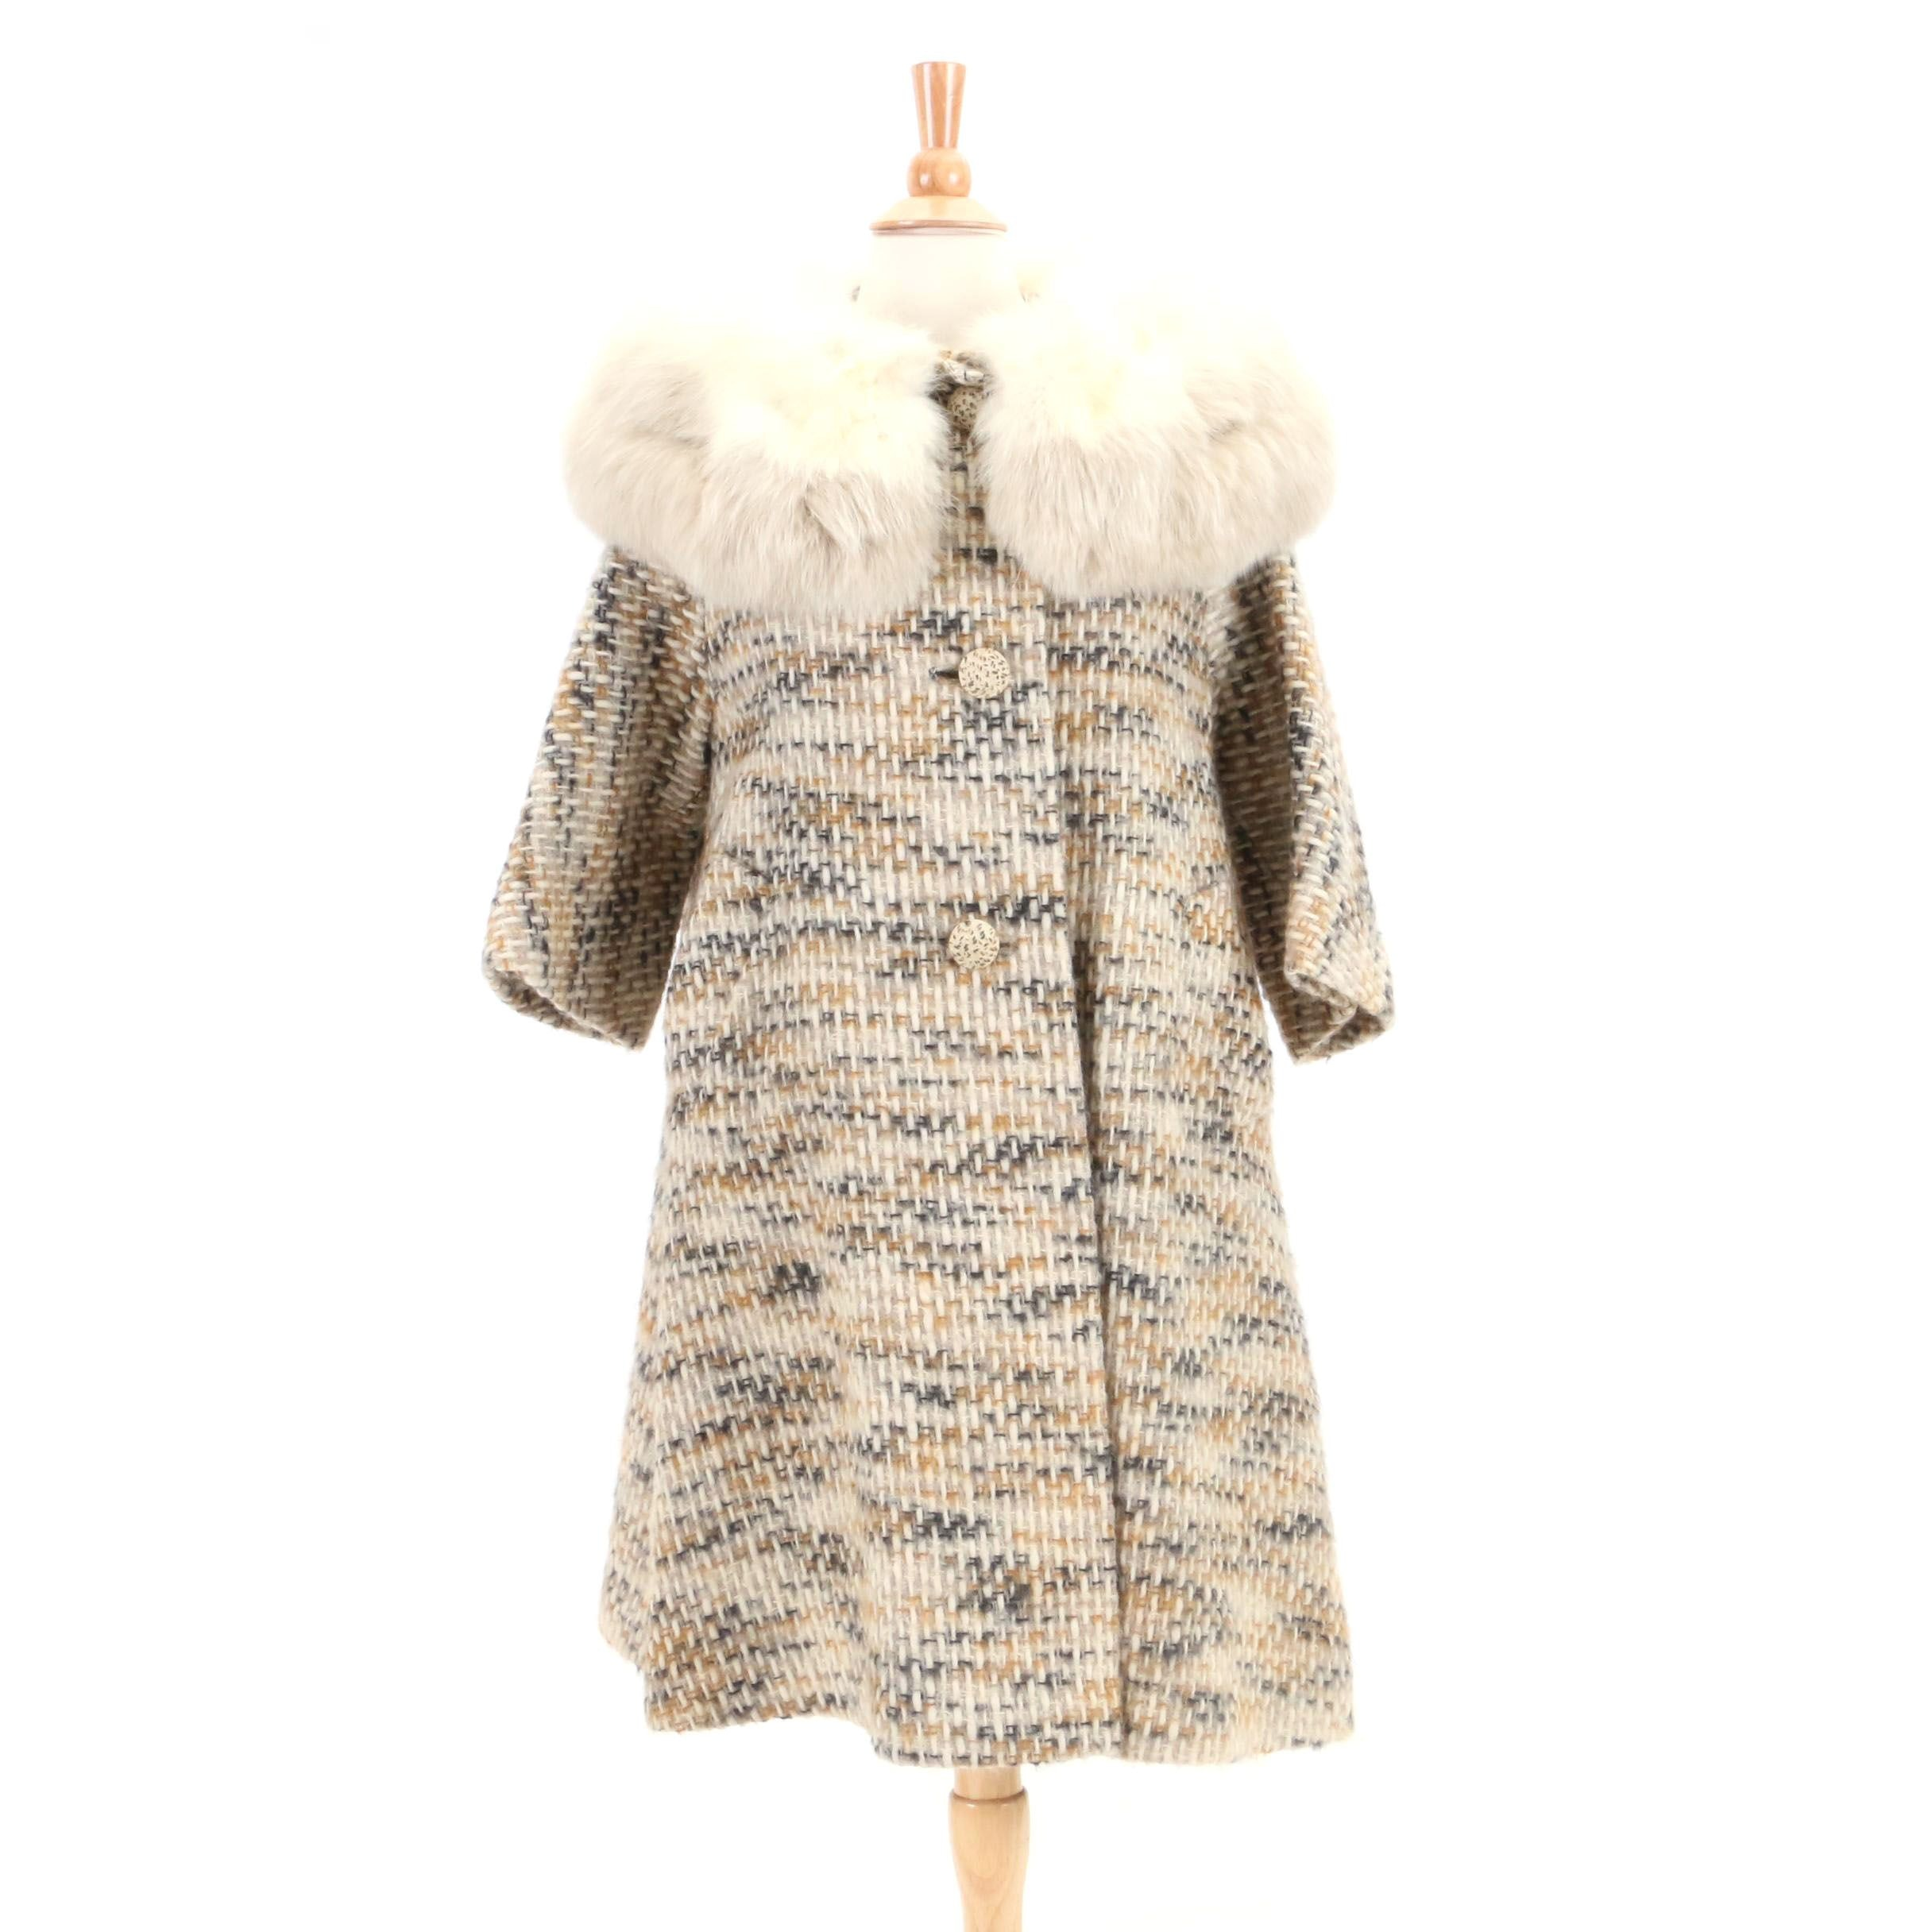 Vintage Gino Rossi Tweed Swing Coat with Fox Fur Collar